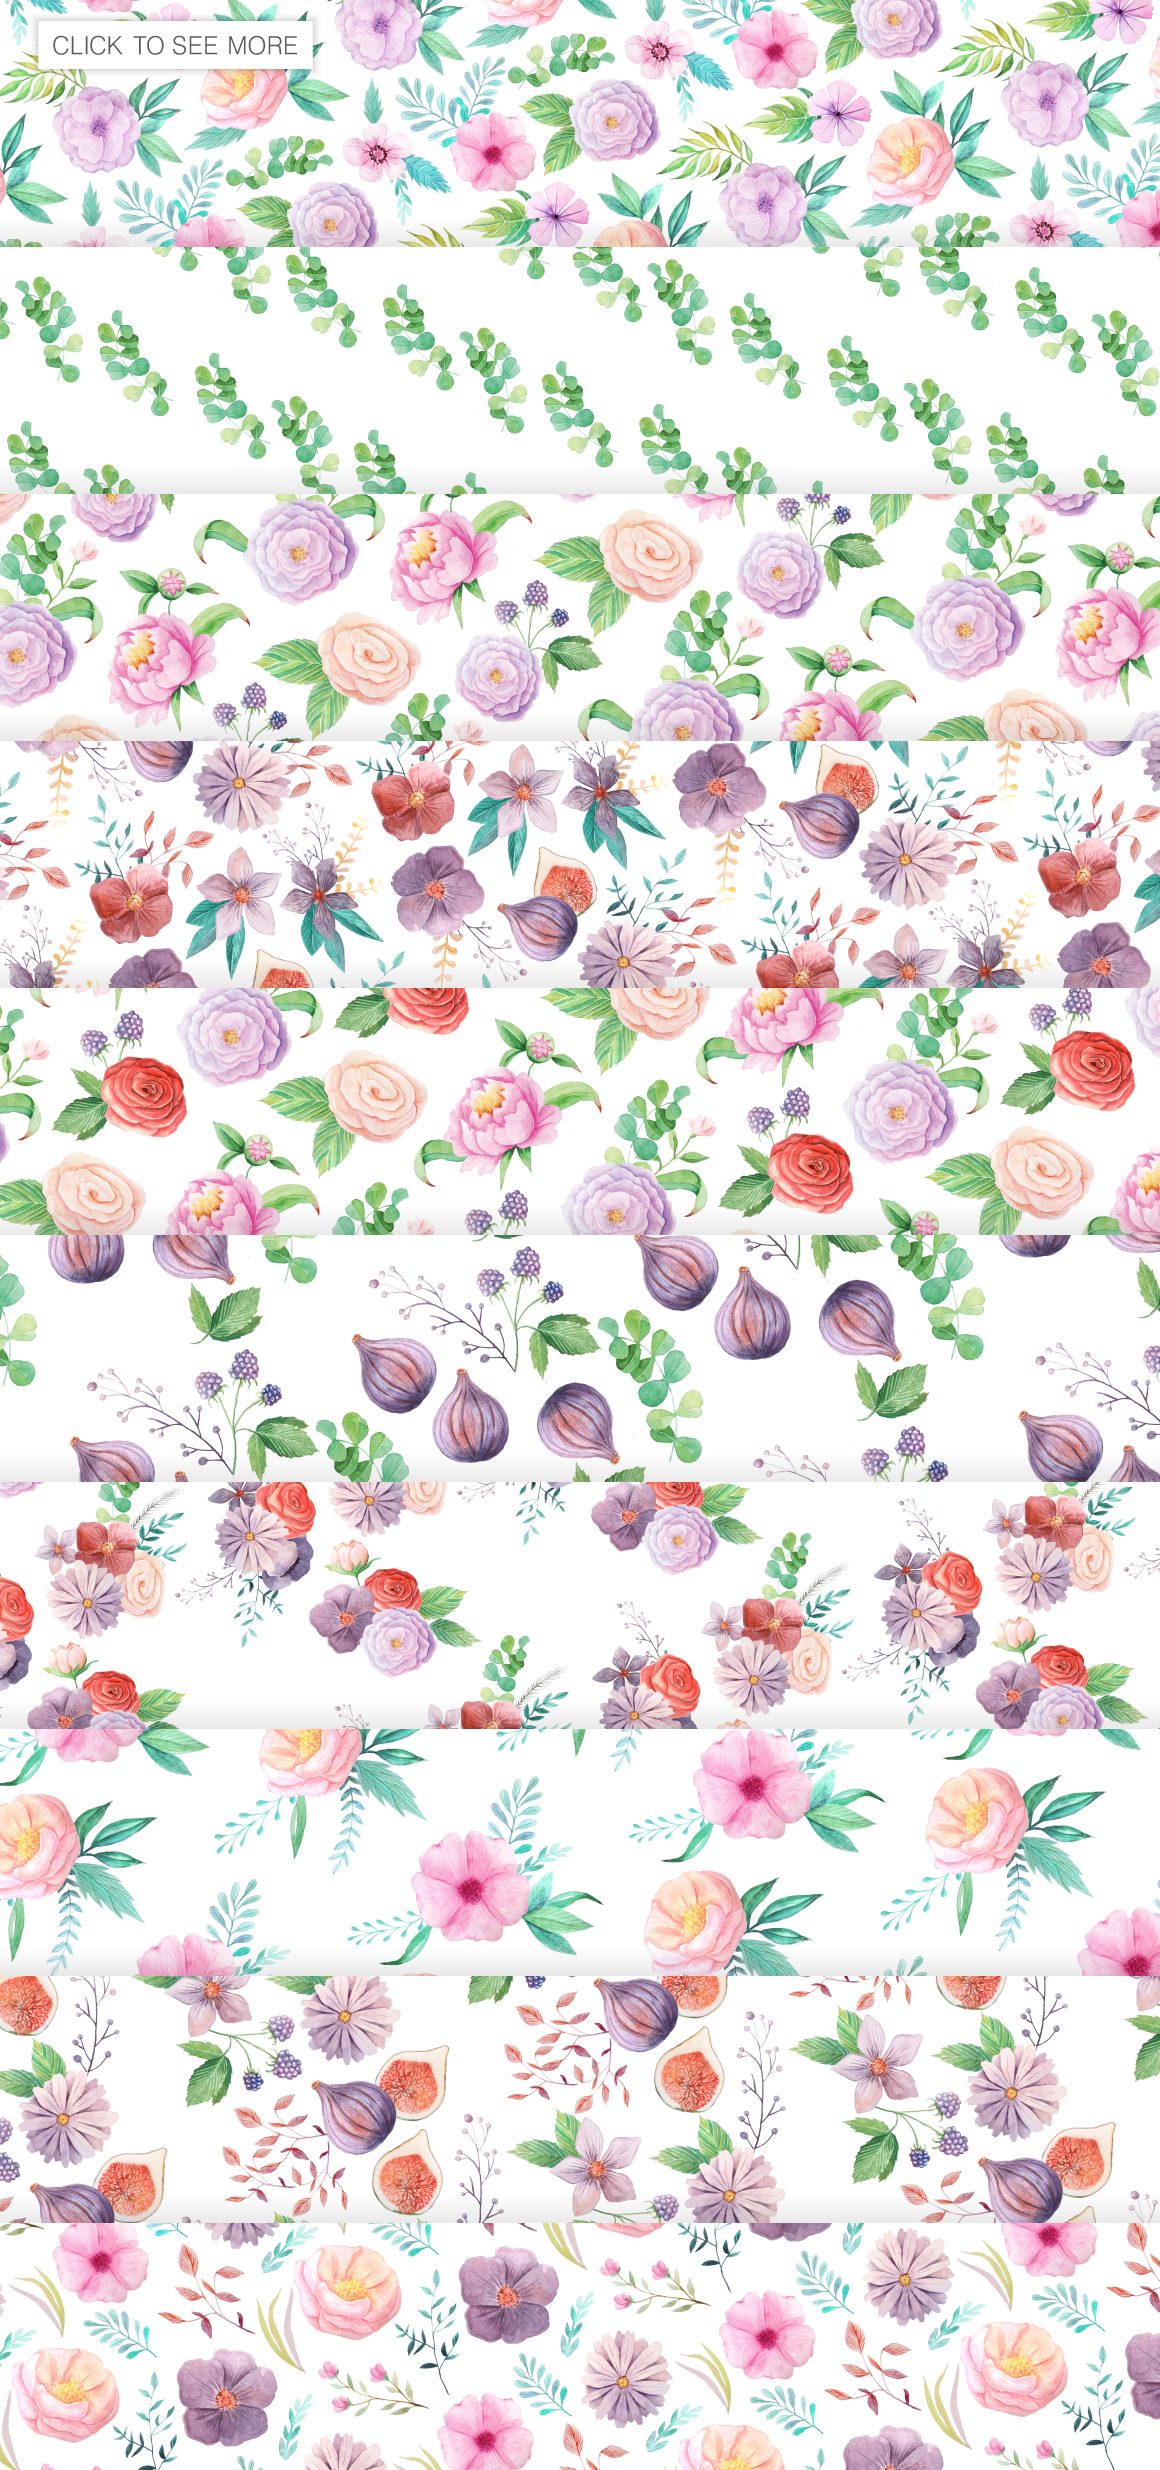 Summer Floral Seamless Patterns example image 2